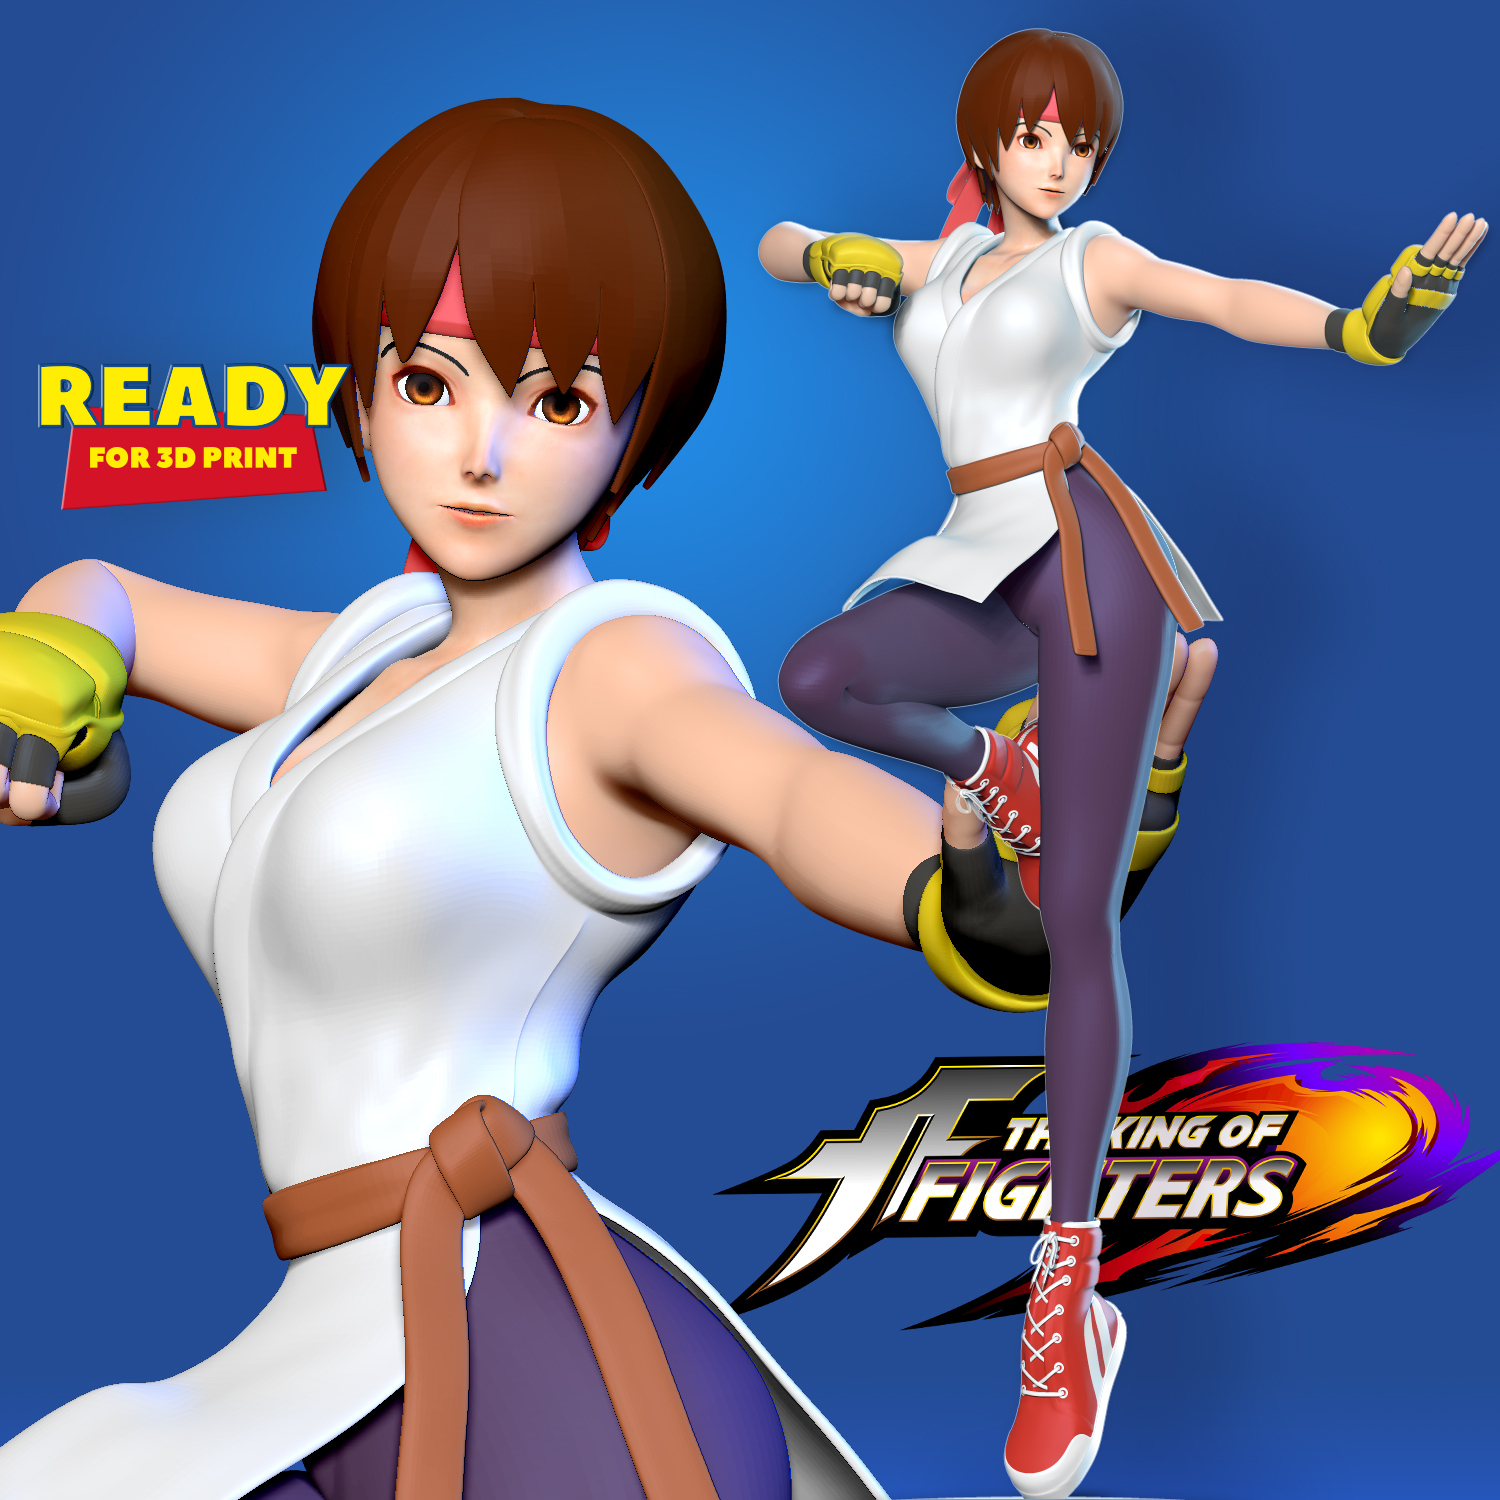 yuri sakazaki (the king of fighters and 2 more) drawn by